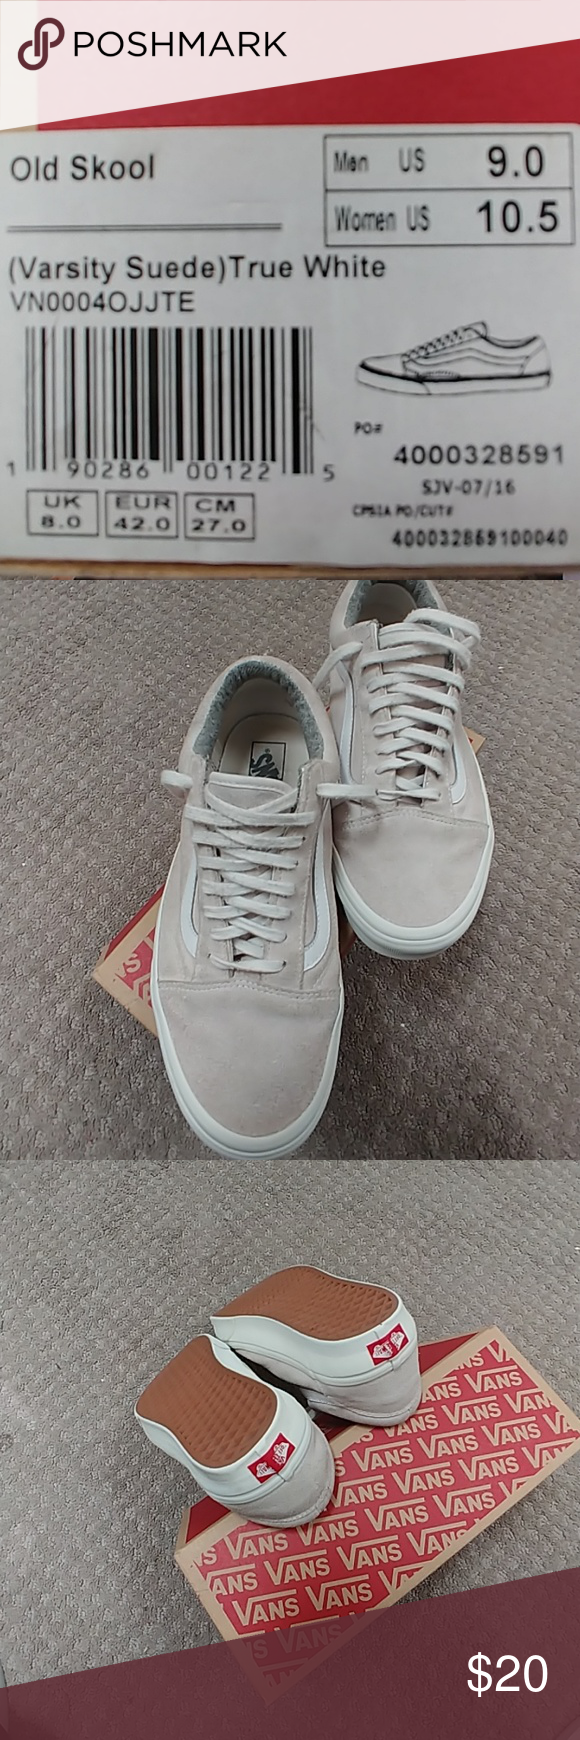 Ol Skool Vans Size 10 - Worn off white suede like fabric. Original box. Pet  free and smoke free home. Vans Shoes Athletic Shoes d25edcf52